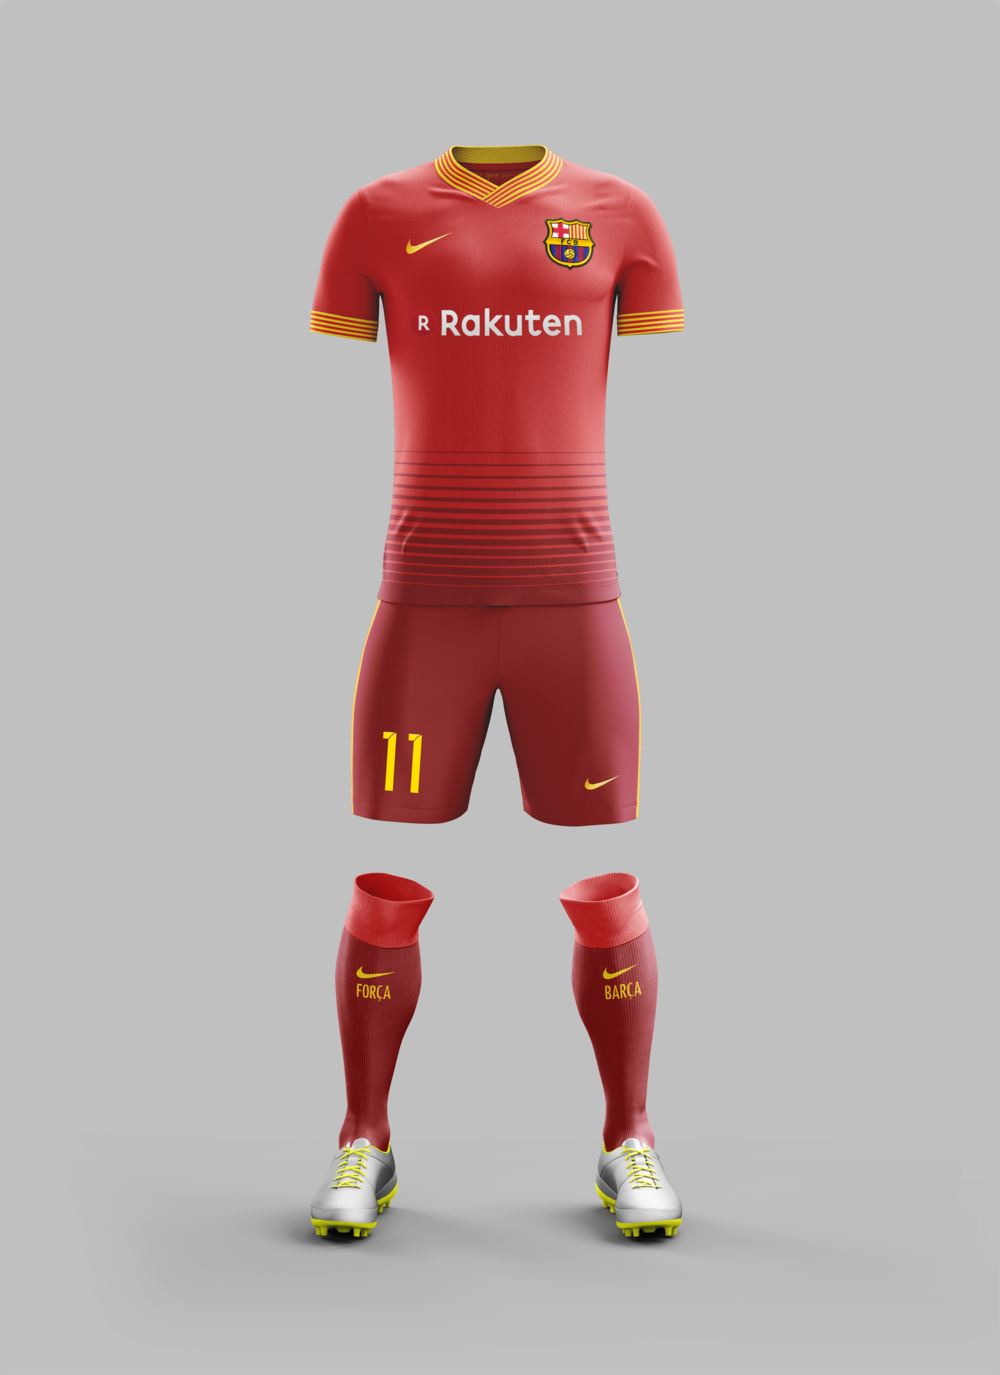 b3daa7d02 This season s FC Barcelona away kit uses storm red from the home kit and red  inspired